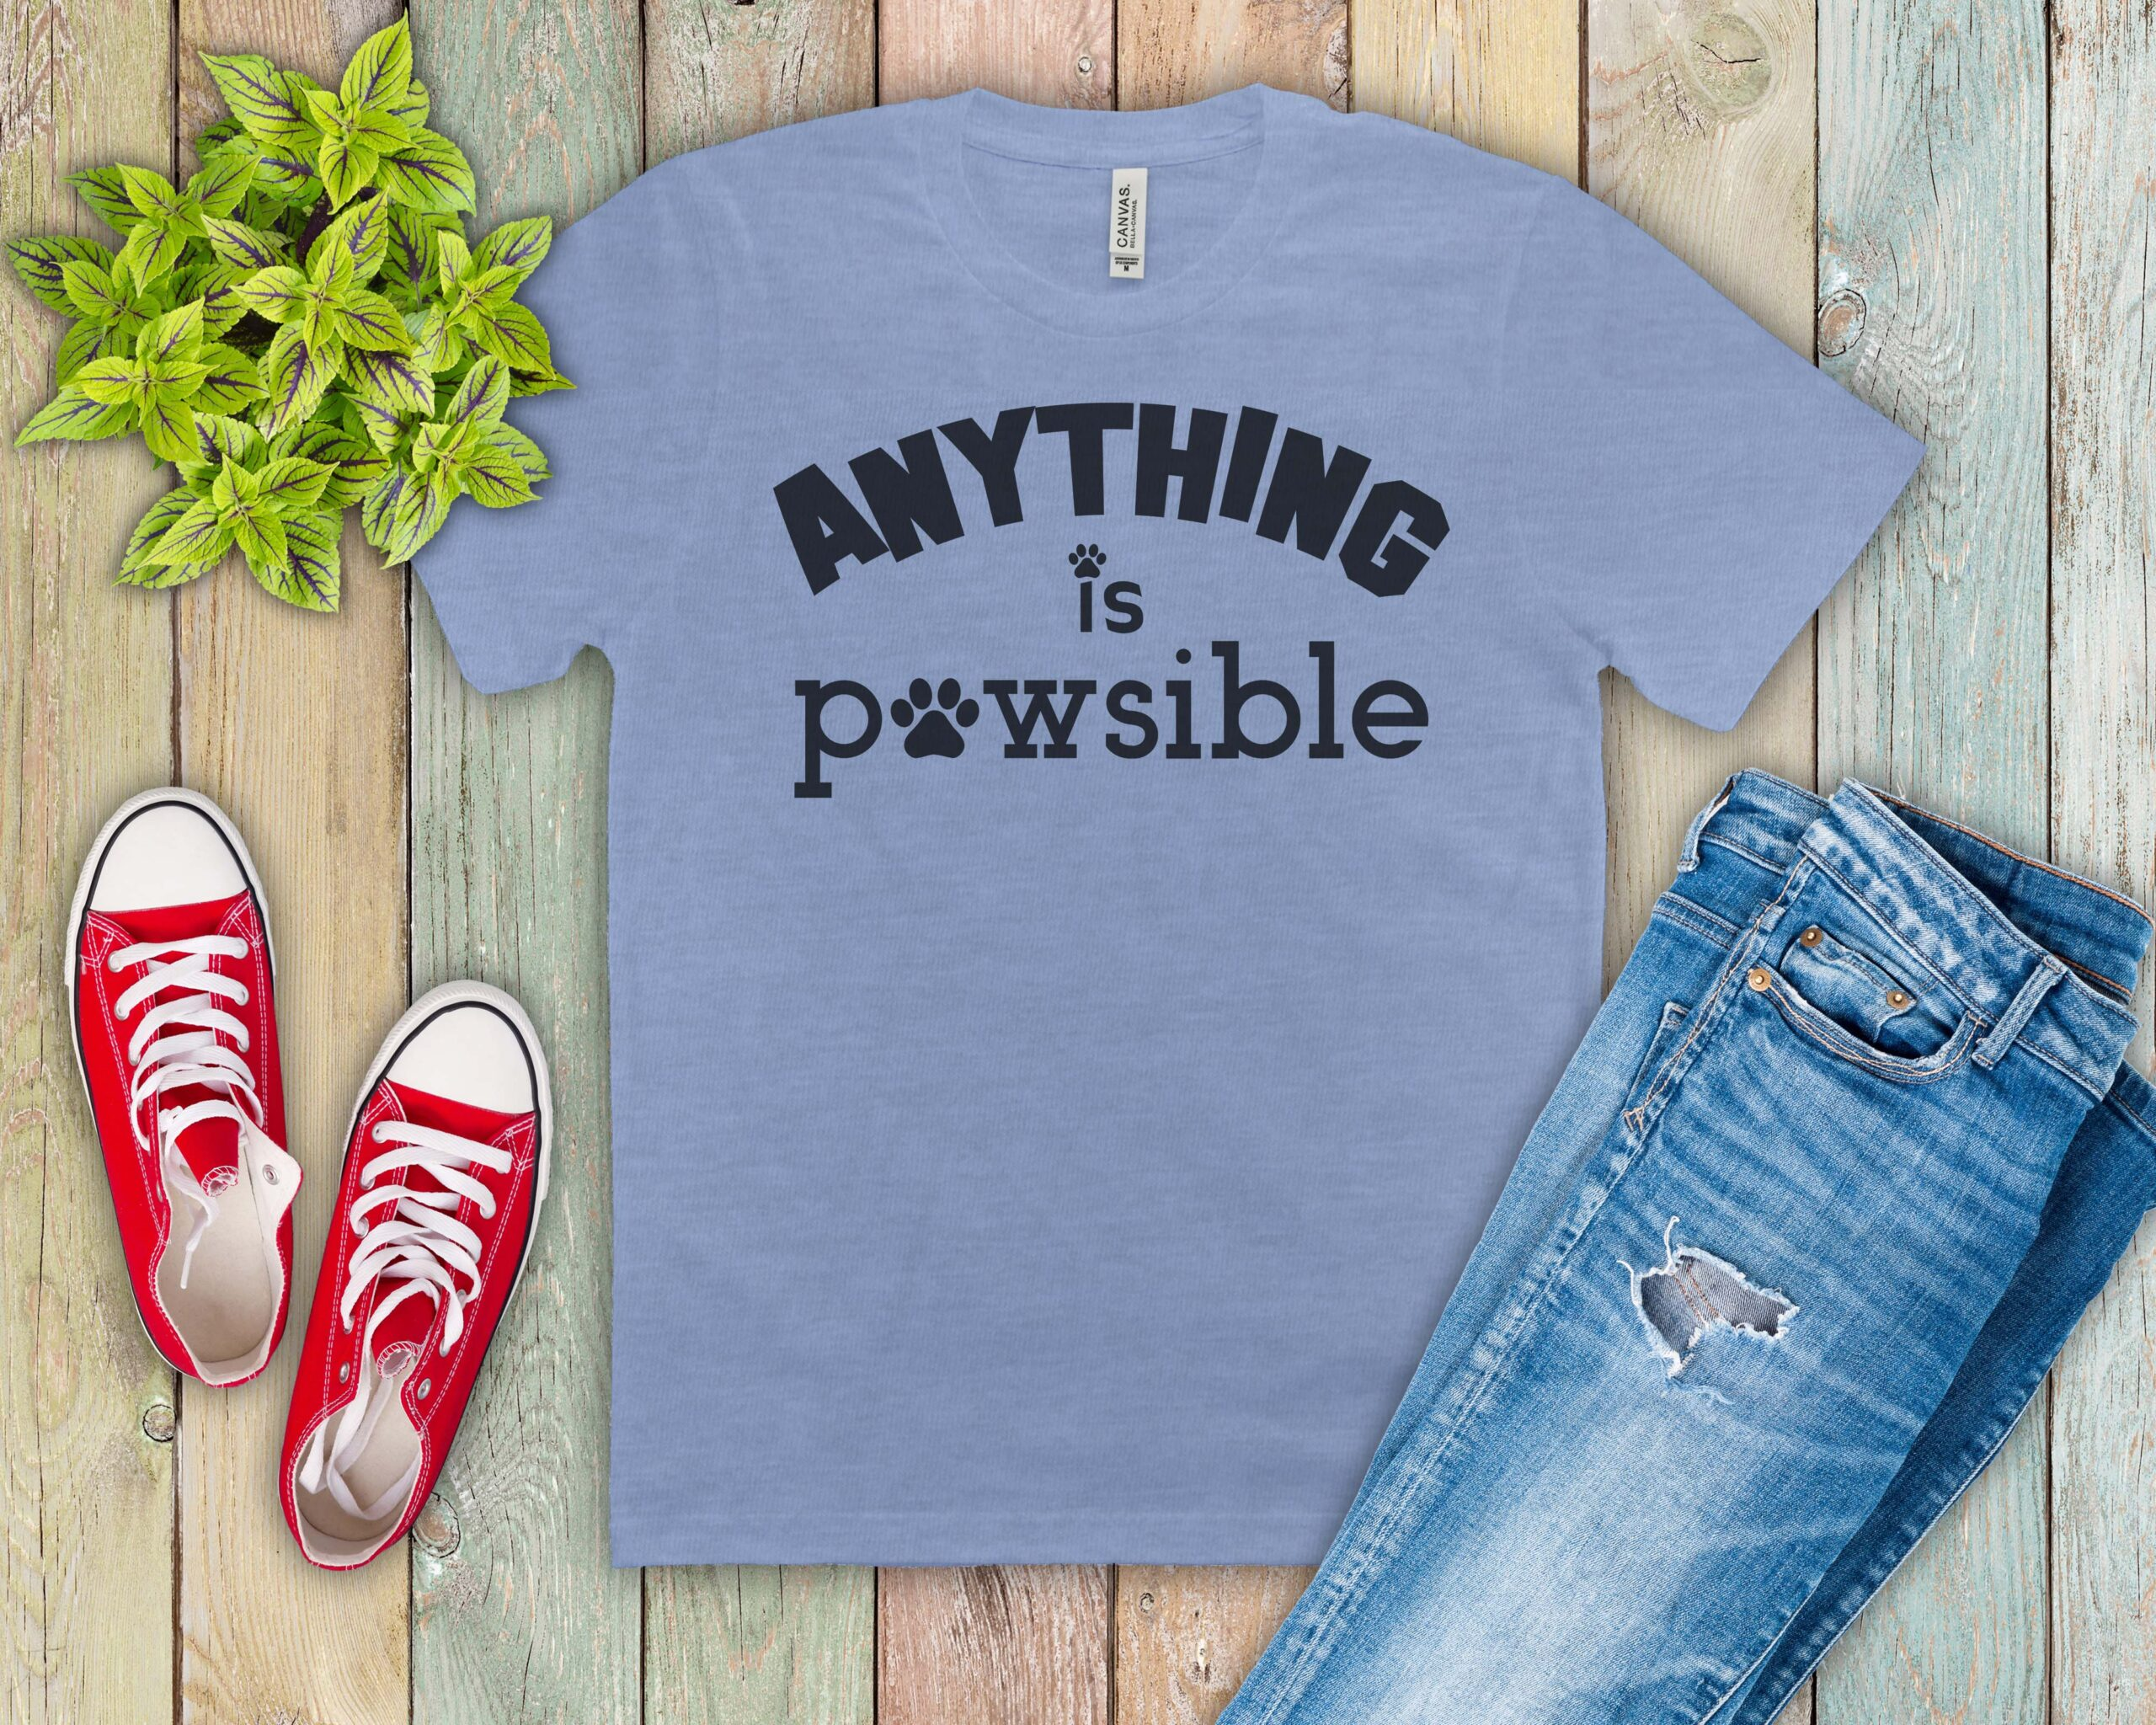 Free Anything is Pawsible SVG File